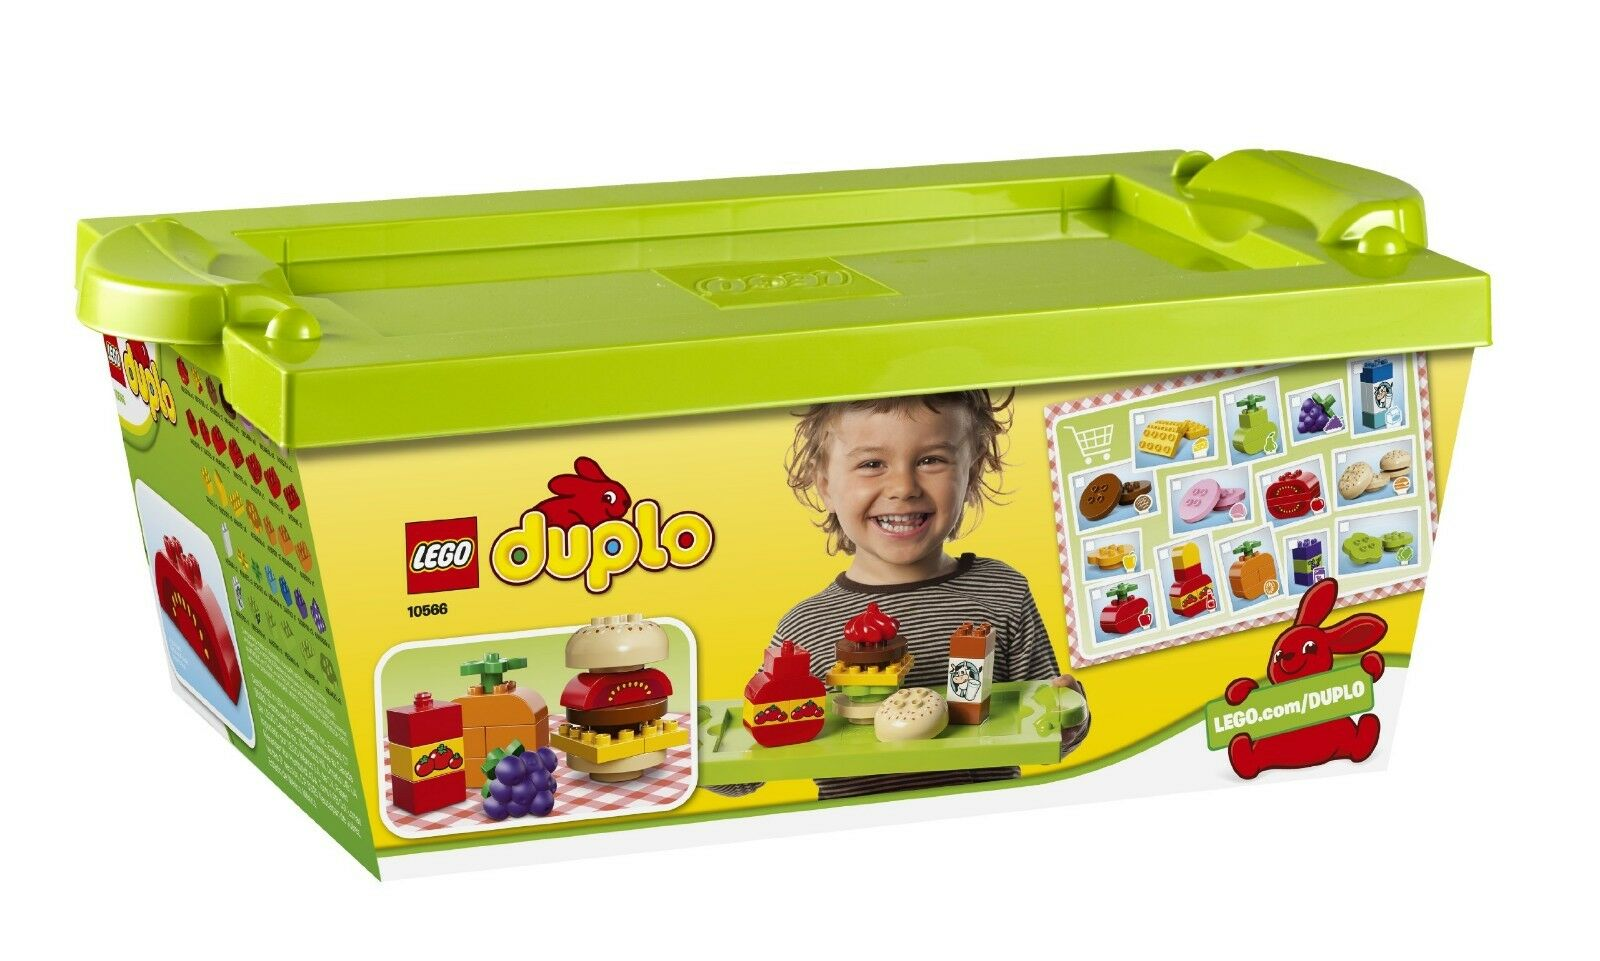 LEGO-10566-DUPLO Creative Play Creative Creative Creative Picnic Set-Brand New-Free UK Delivery 8b90a7